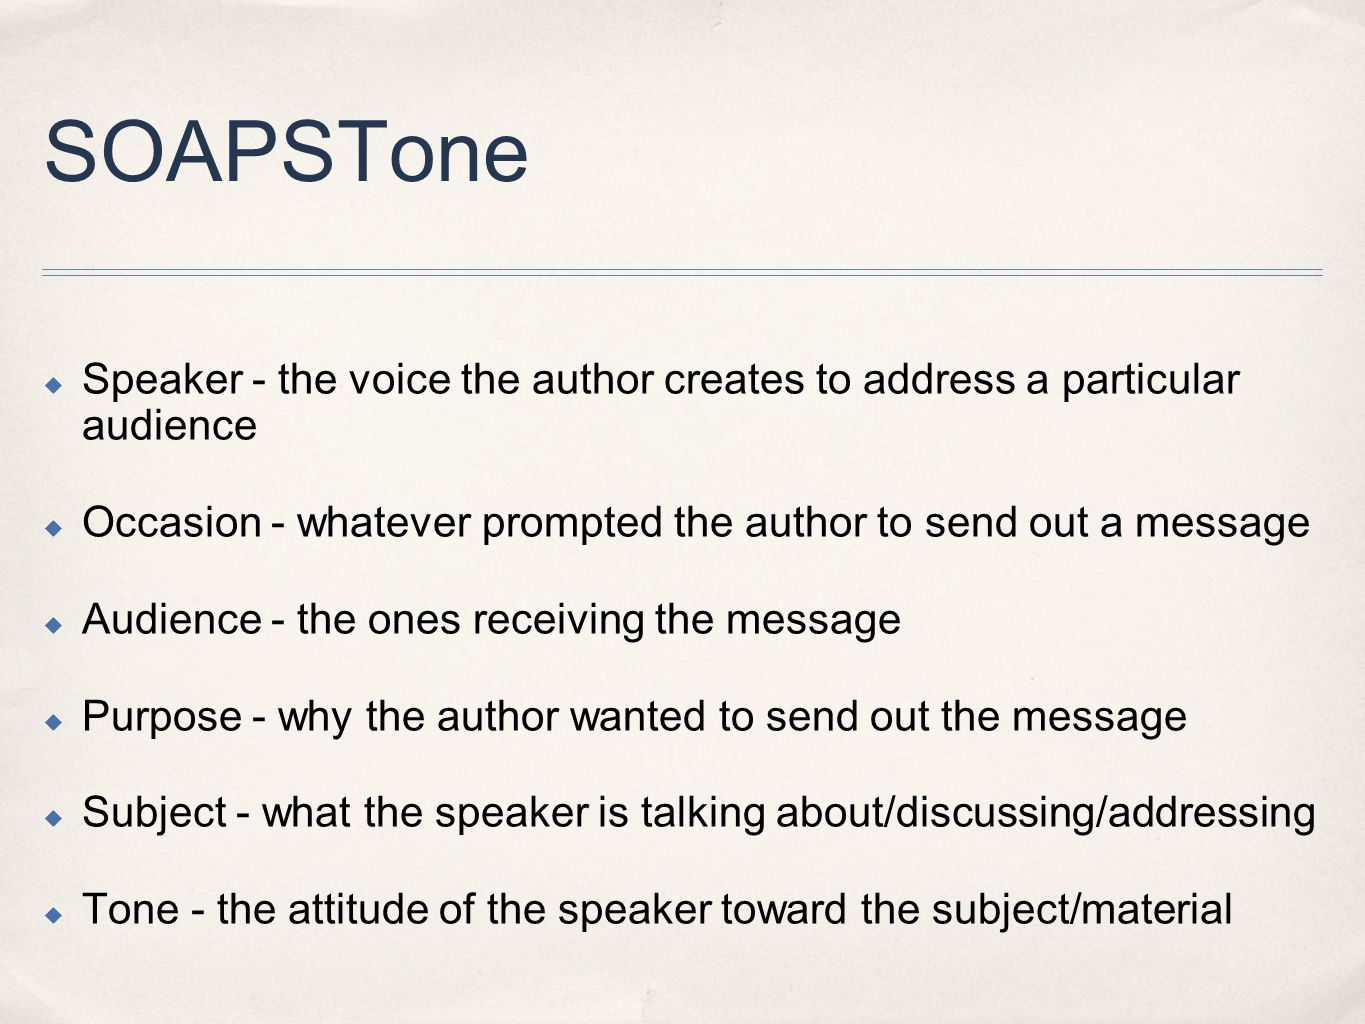 SOAPSTone  Speaker - the voice the author creates to address a particular audience  Occasion - whatever prompted the author to send out a message  Audience - the ones receiving the message  Purpose - why the author wanted to send out the message  Subject - what the speaker is talking about/discussing/addressing  Tone - the attitude of the speaker toward the subject/material